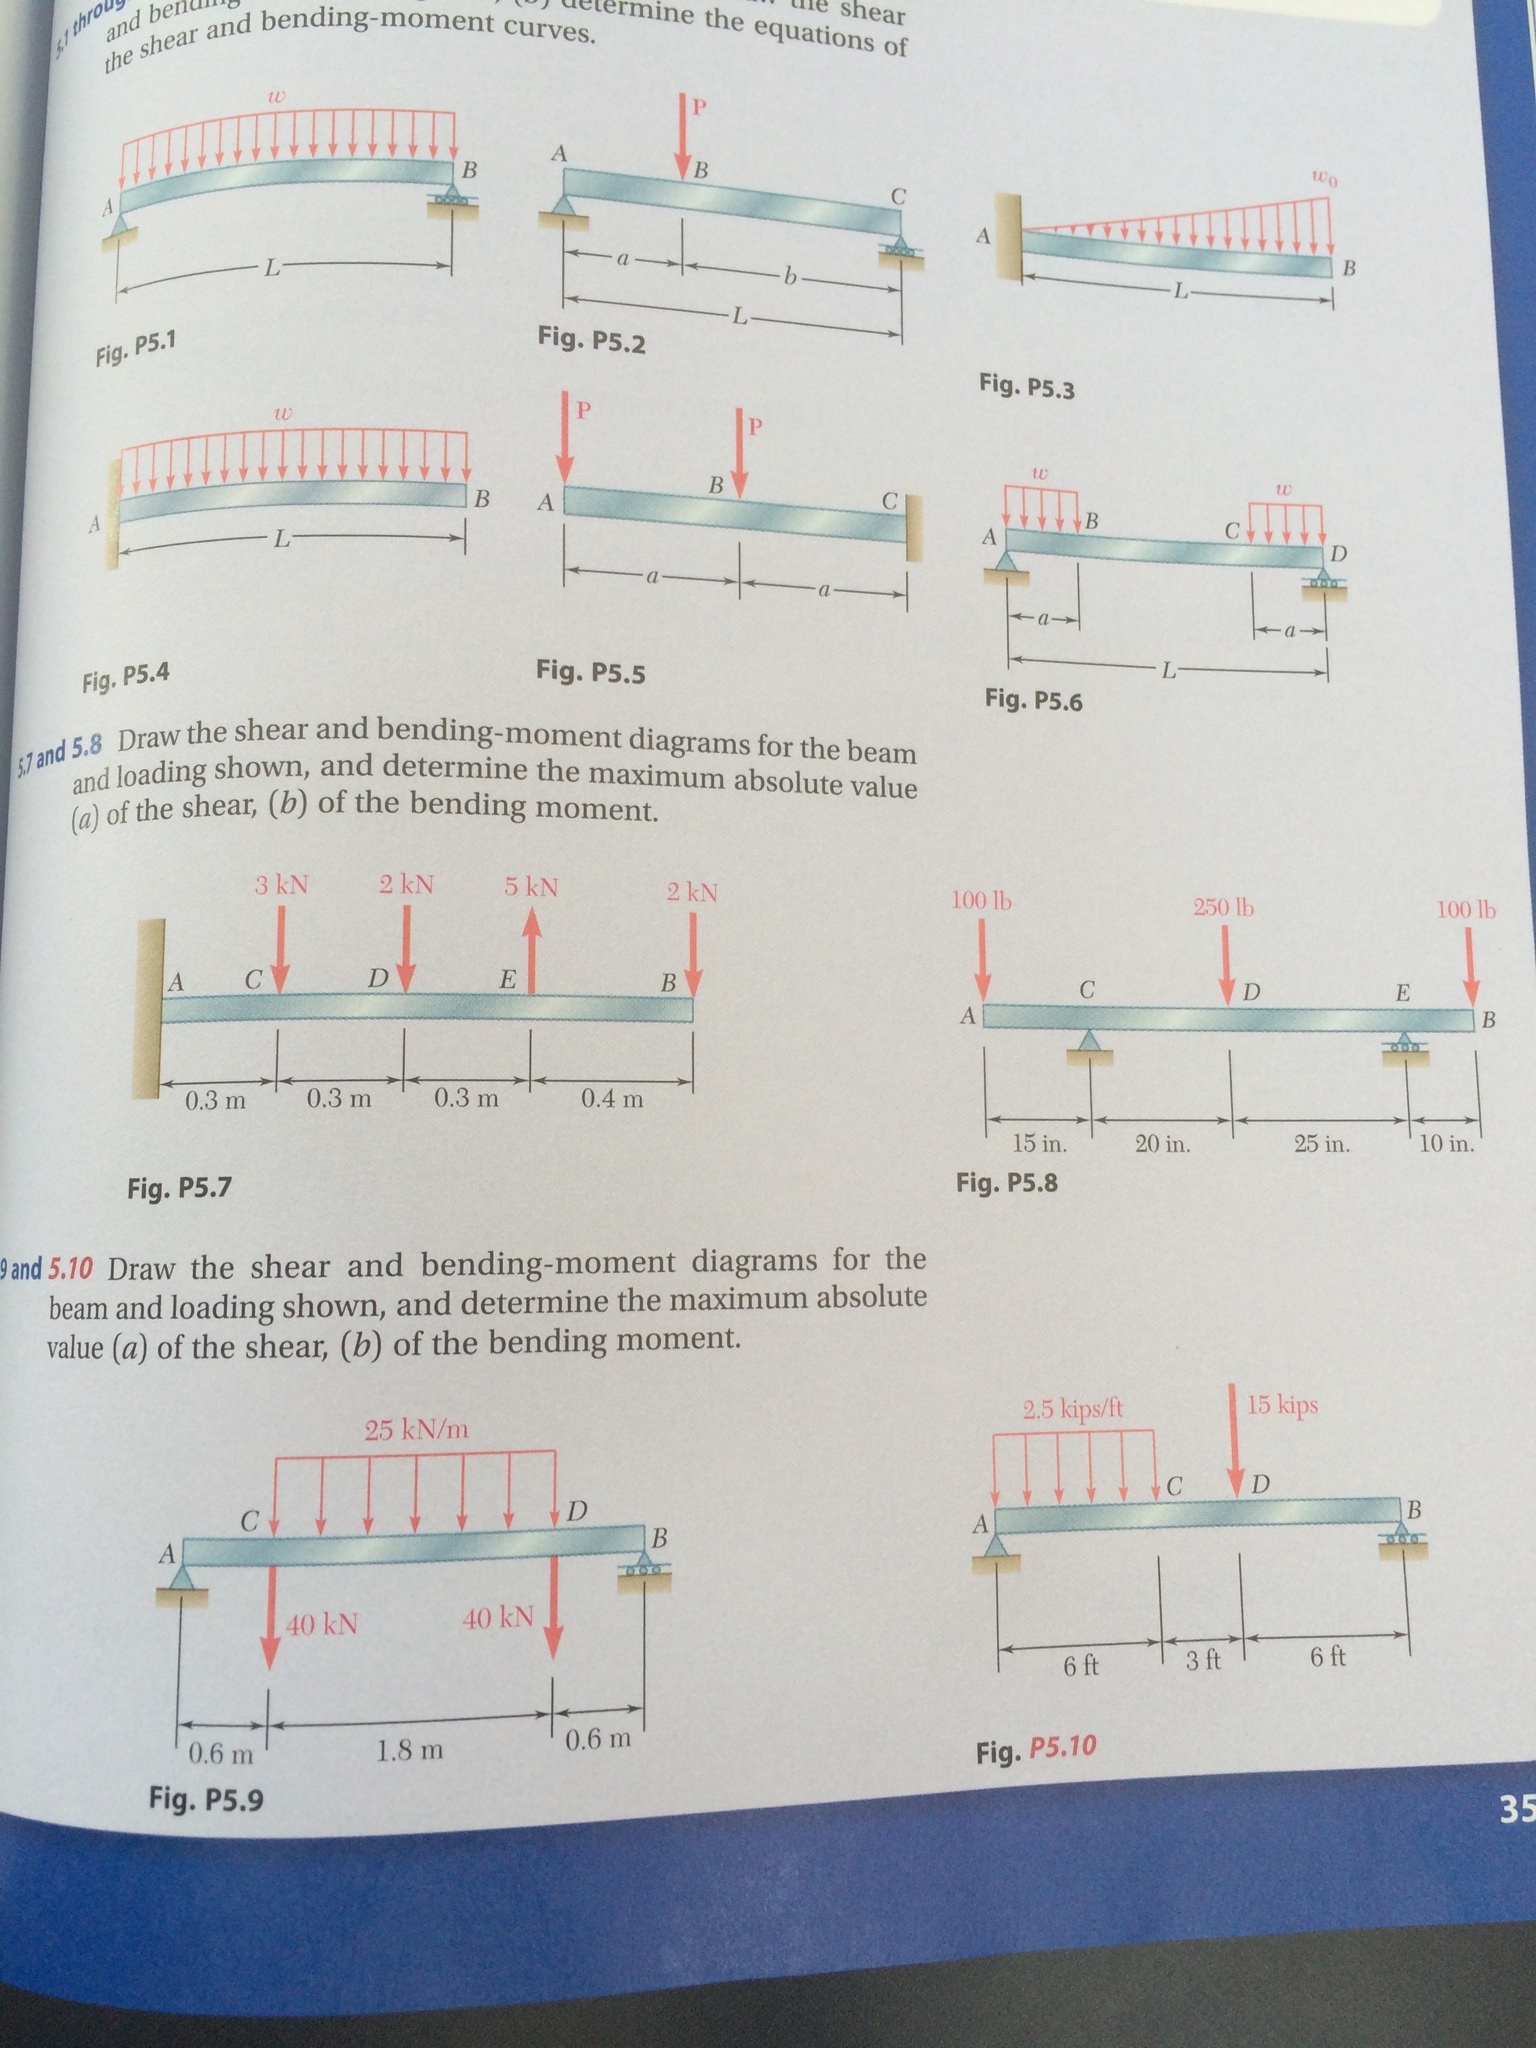 Solved 57 And 58 Draw The Shear Bending Moment Diag Text Bendingmoment Diagrams For Beam Loading Shown Determine Maximum Absolute Value A Of